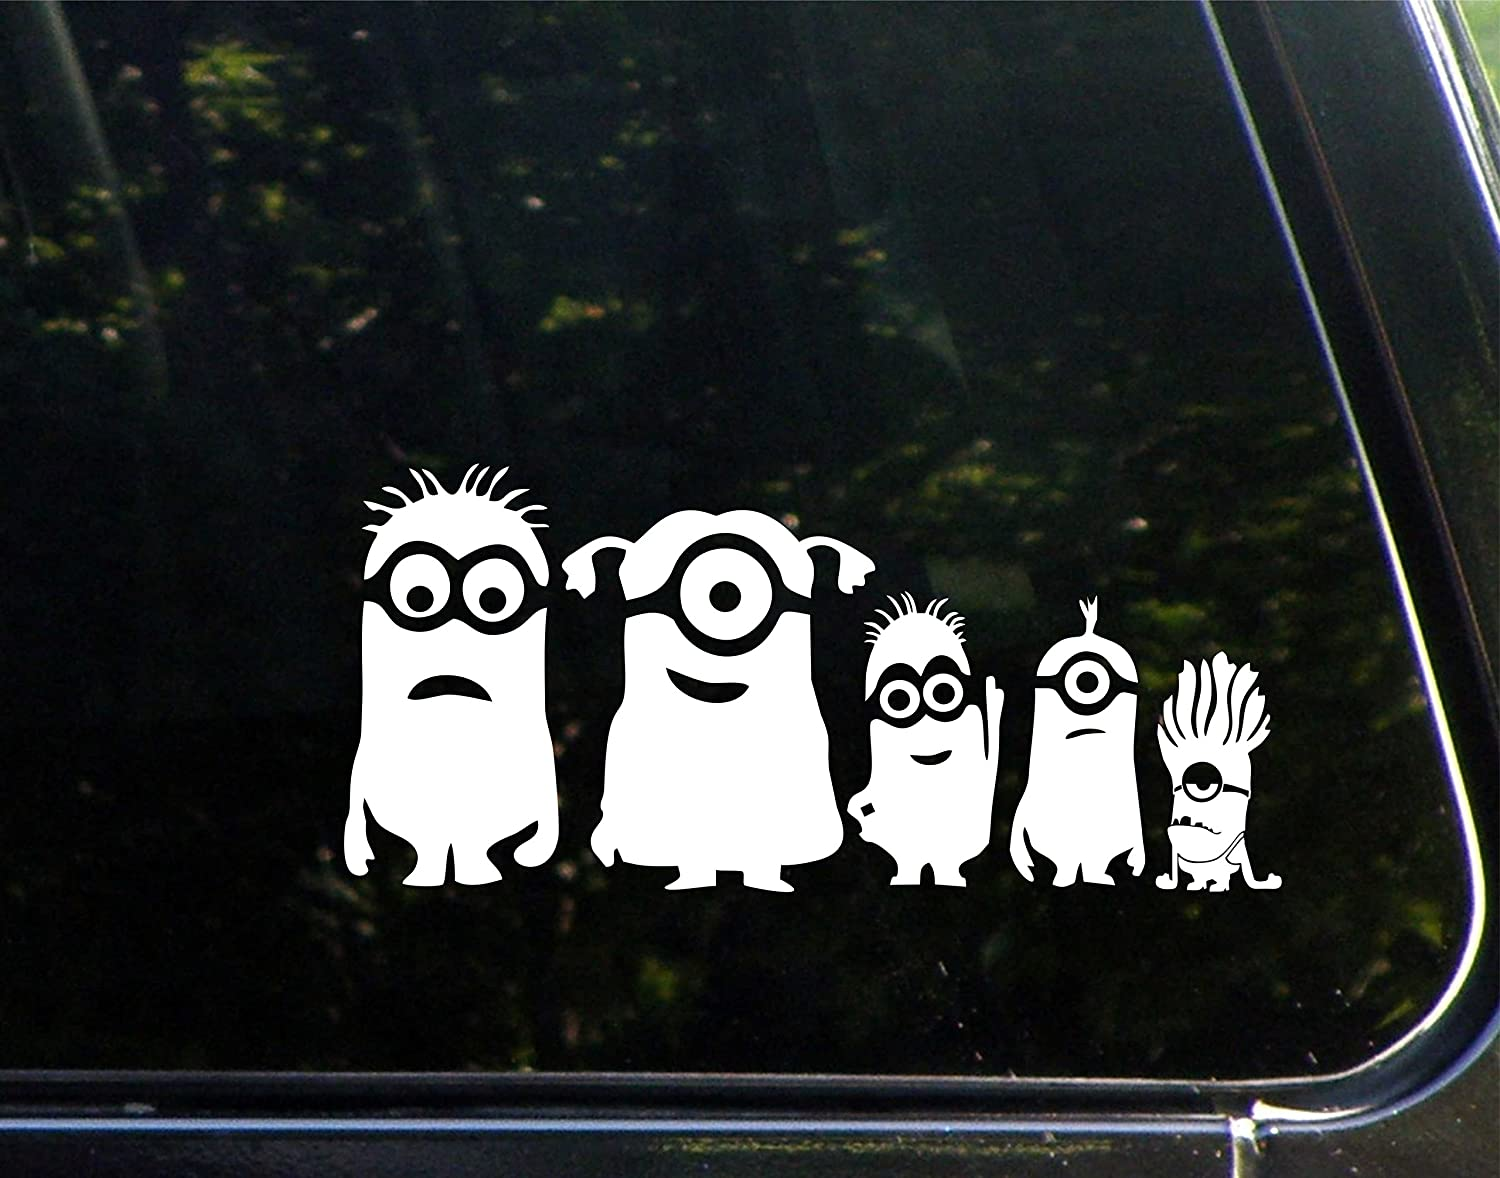 Amazoncom Minion Family  X  Vinyl Die Cut Decal Bumper - Window stickers for cars